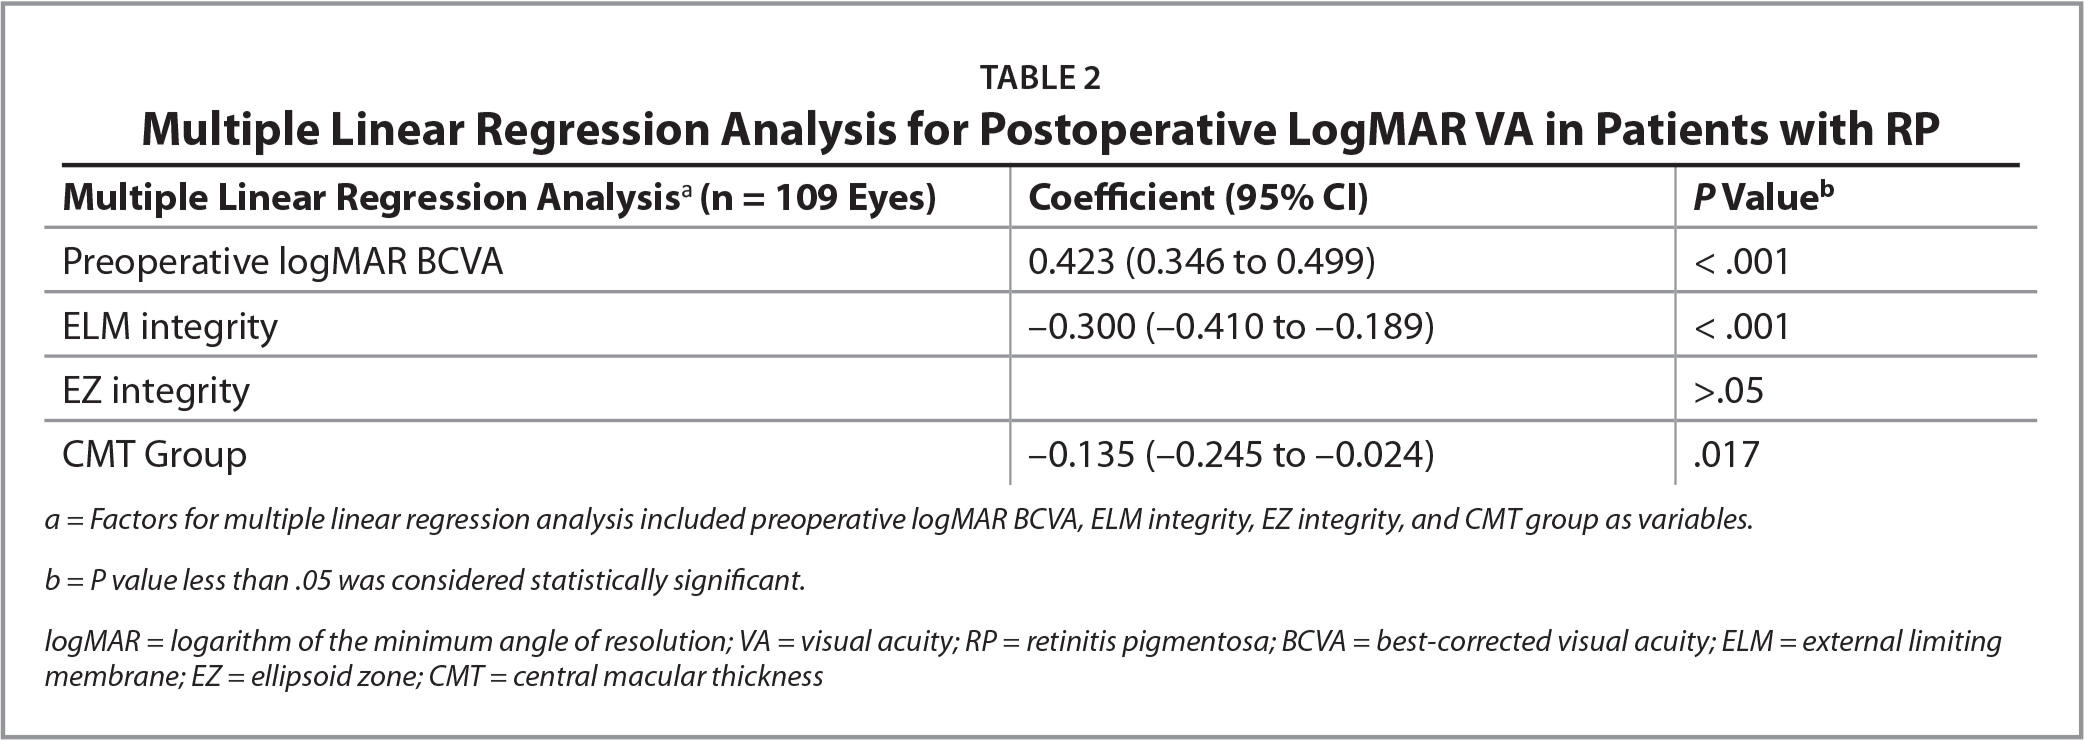 Multiple Linear Regression Analysis for Postoperative LogMAR VA in Patients with RP